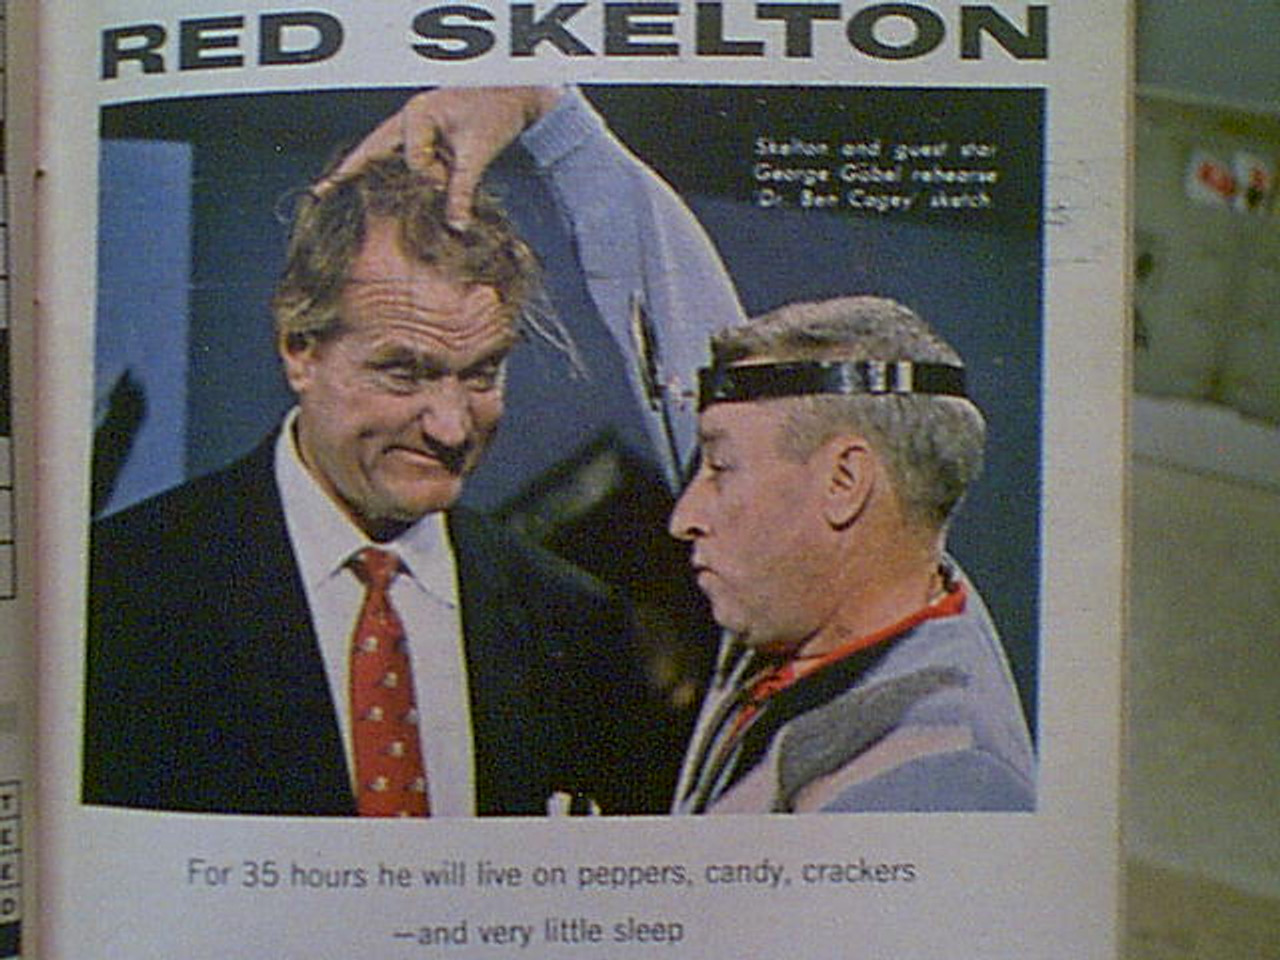 Skelton, Red TV Guide Magazine 1963 Signed Autograph Color Cover Photo